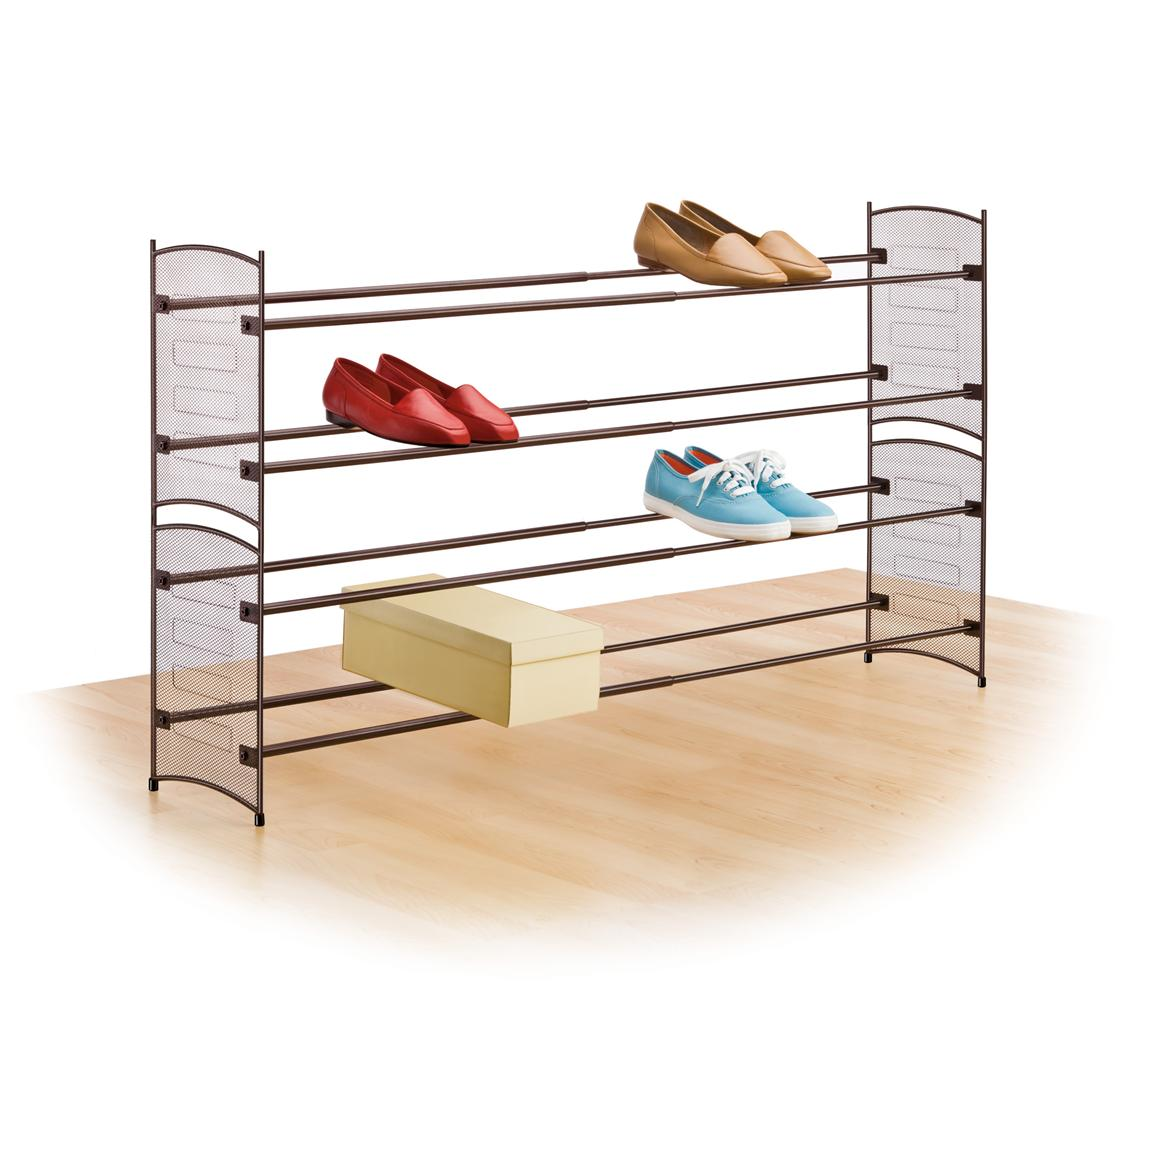 Shoe rack clipart.